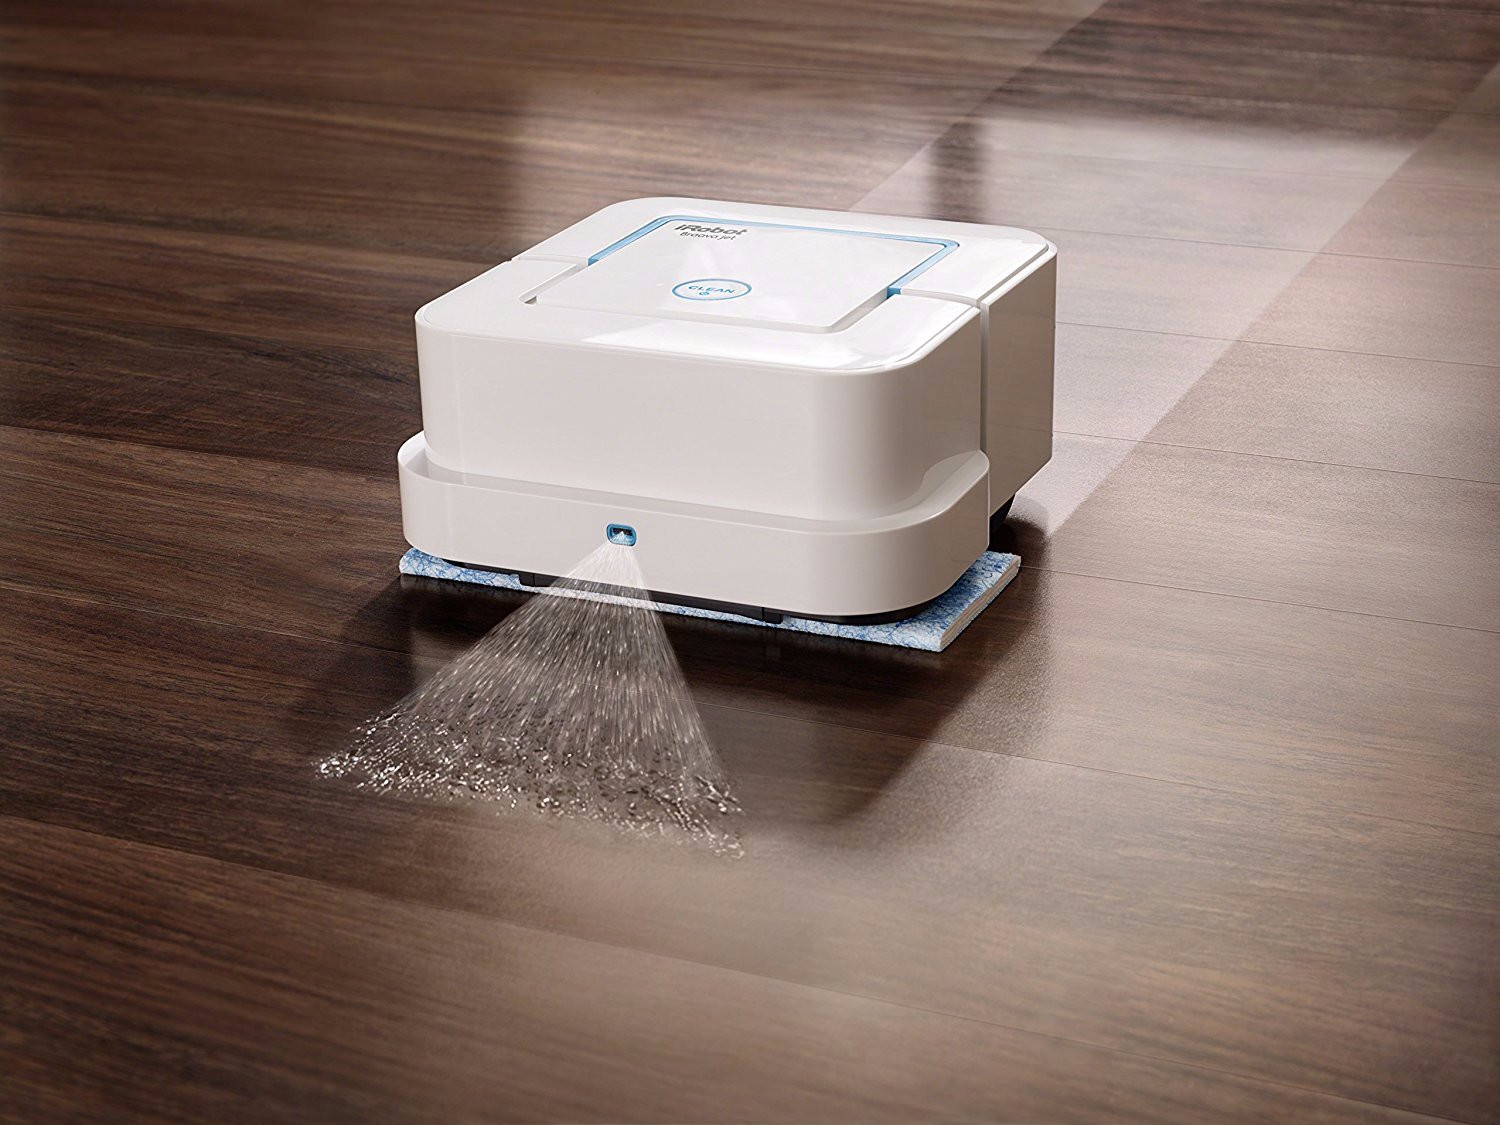 hardwood floor cleaner ratings of 12 smart home gadgets that practically clean the house for you for keep scrolling to see how you can make your life a lot easier with these cleaning tools